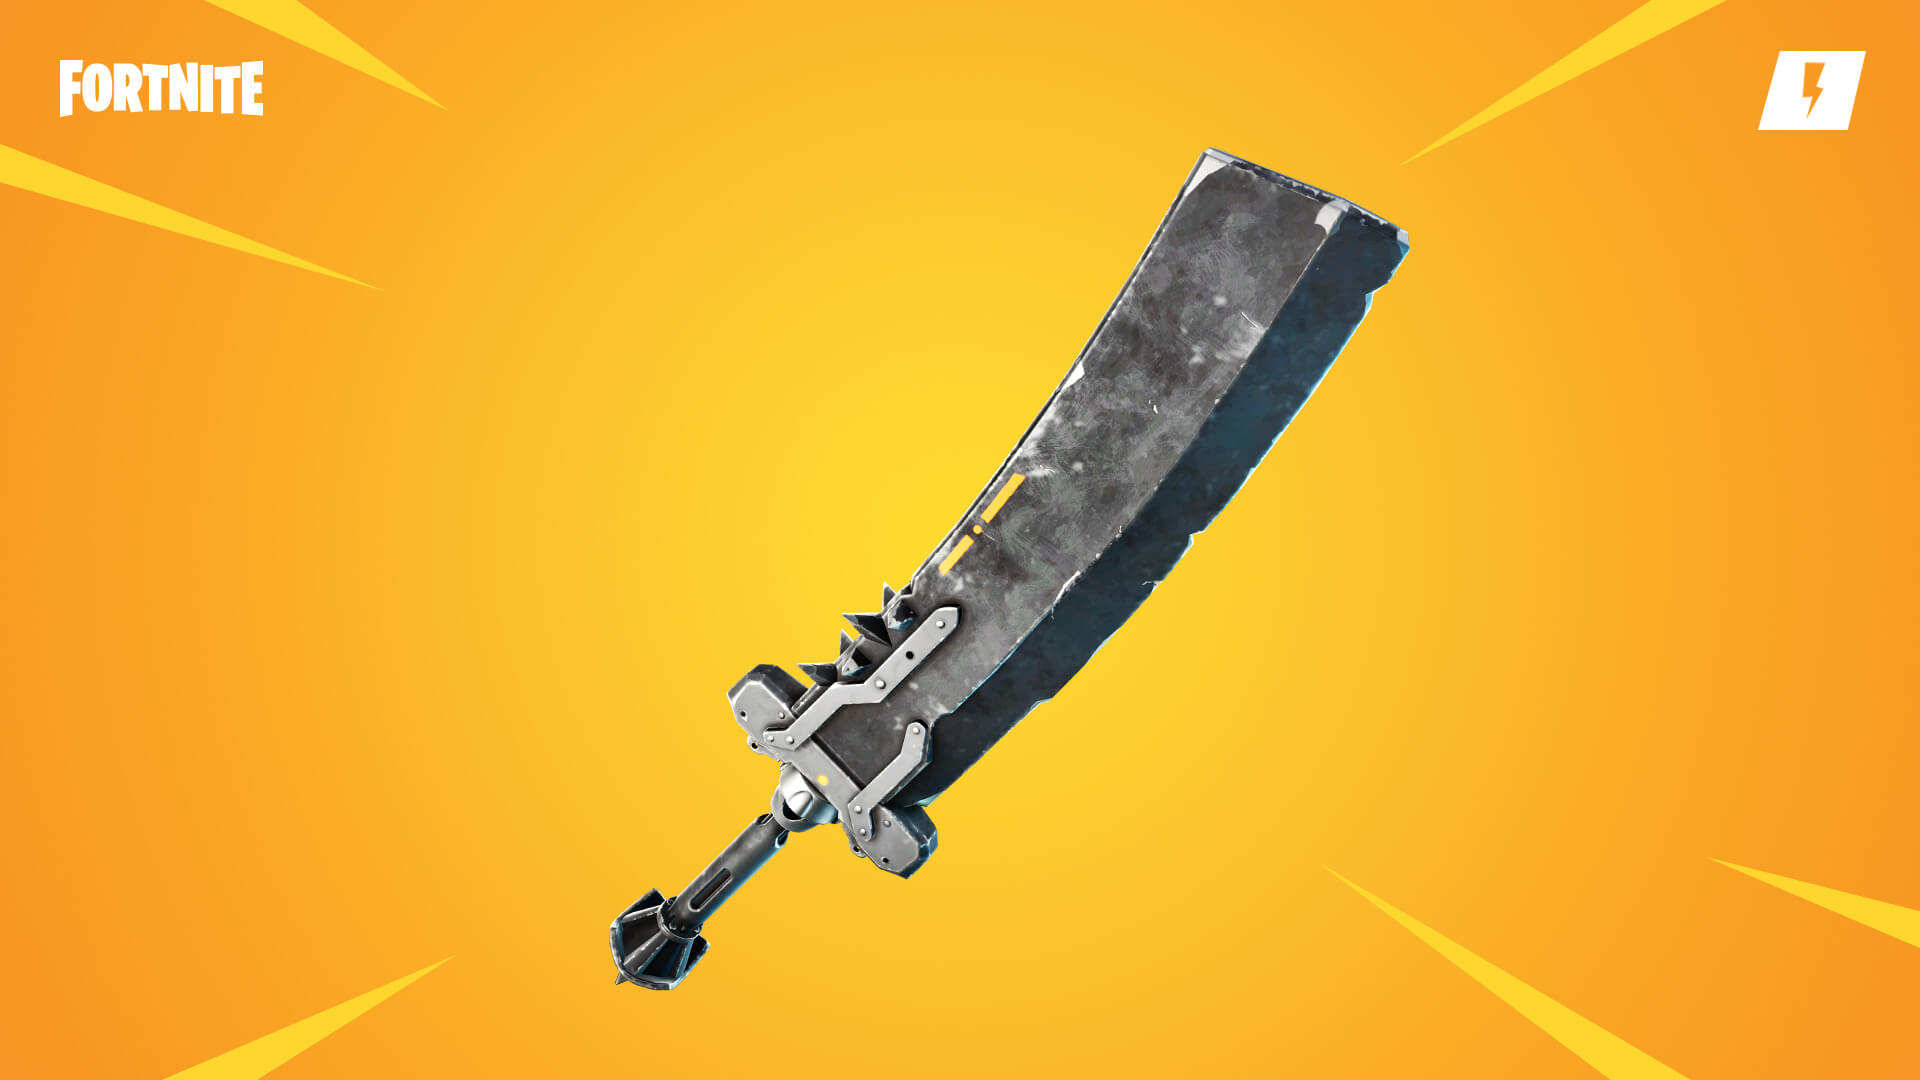 Fortnite Black Blade